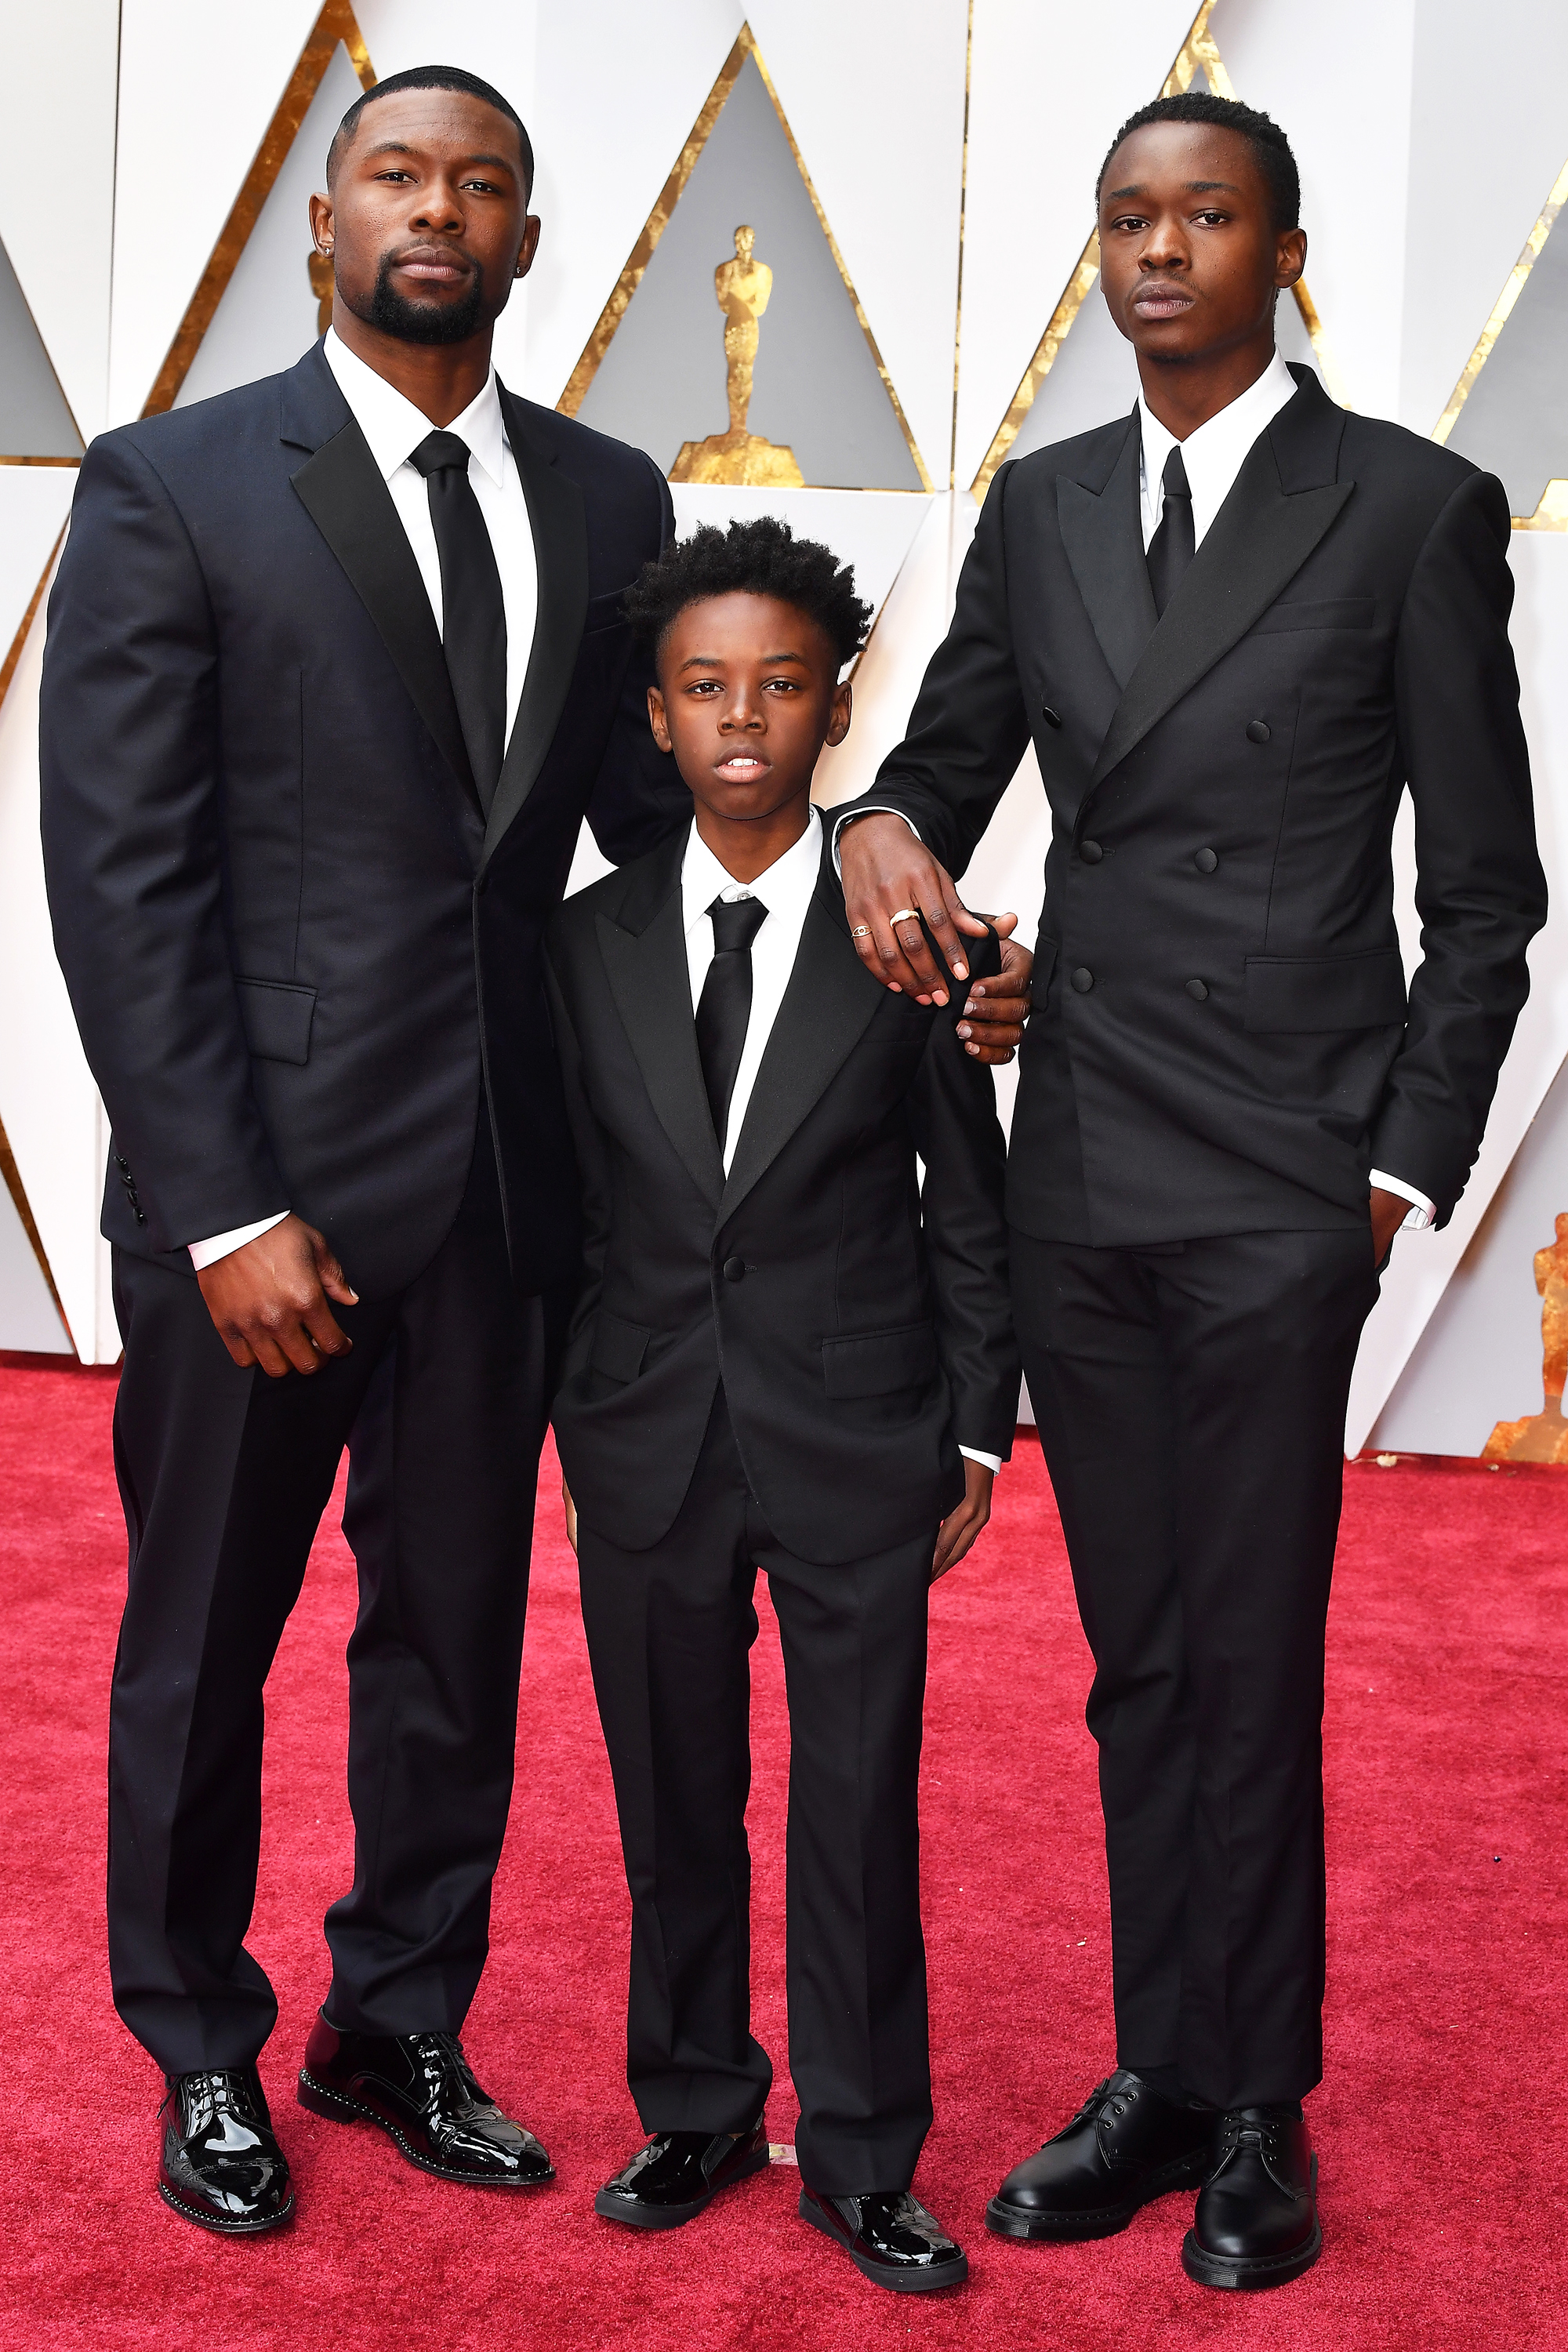 Trevante Rhodes, Alex R. Hibbert and Ashton Sanders on the red carpet for the 89th Oscars, on Feb. 26, 2017 in Hollywood, Calif.